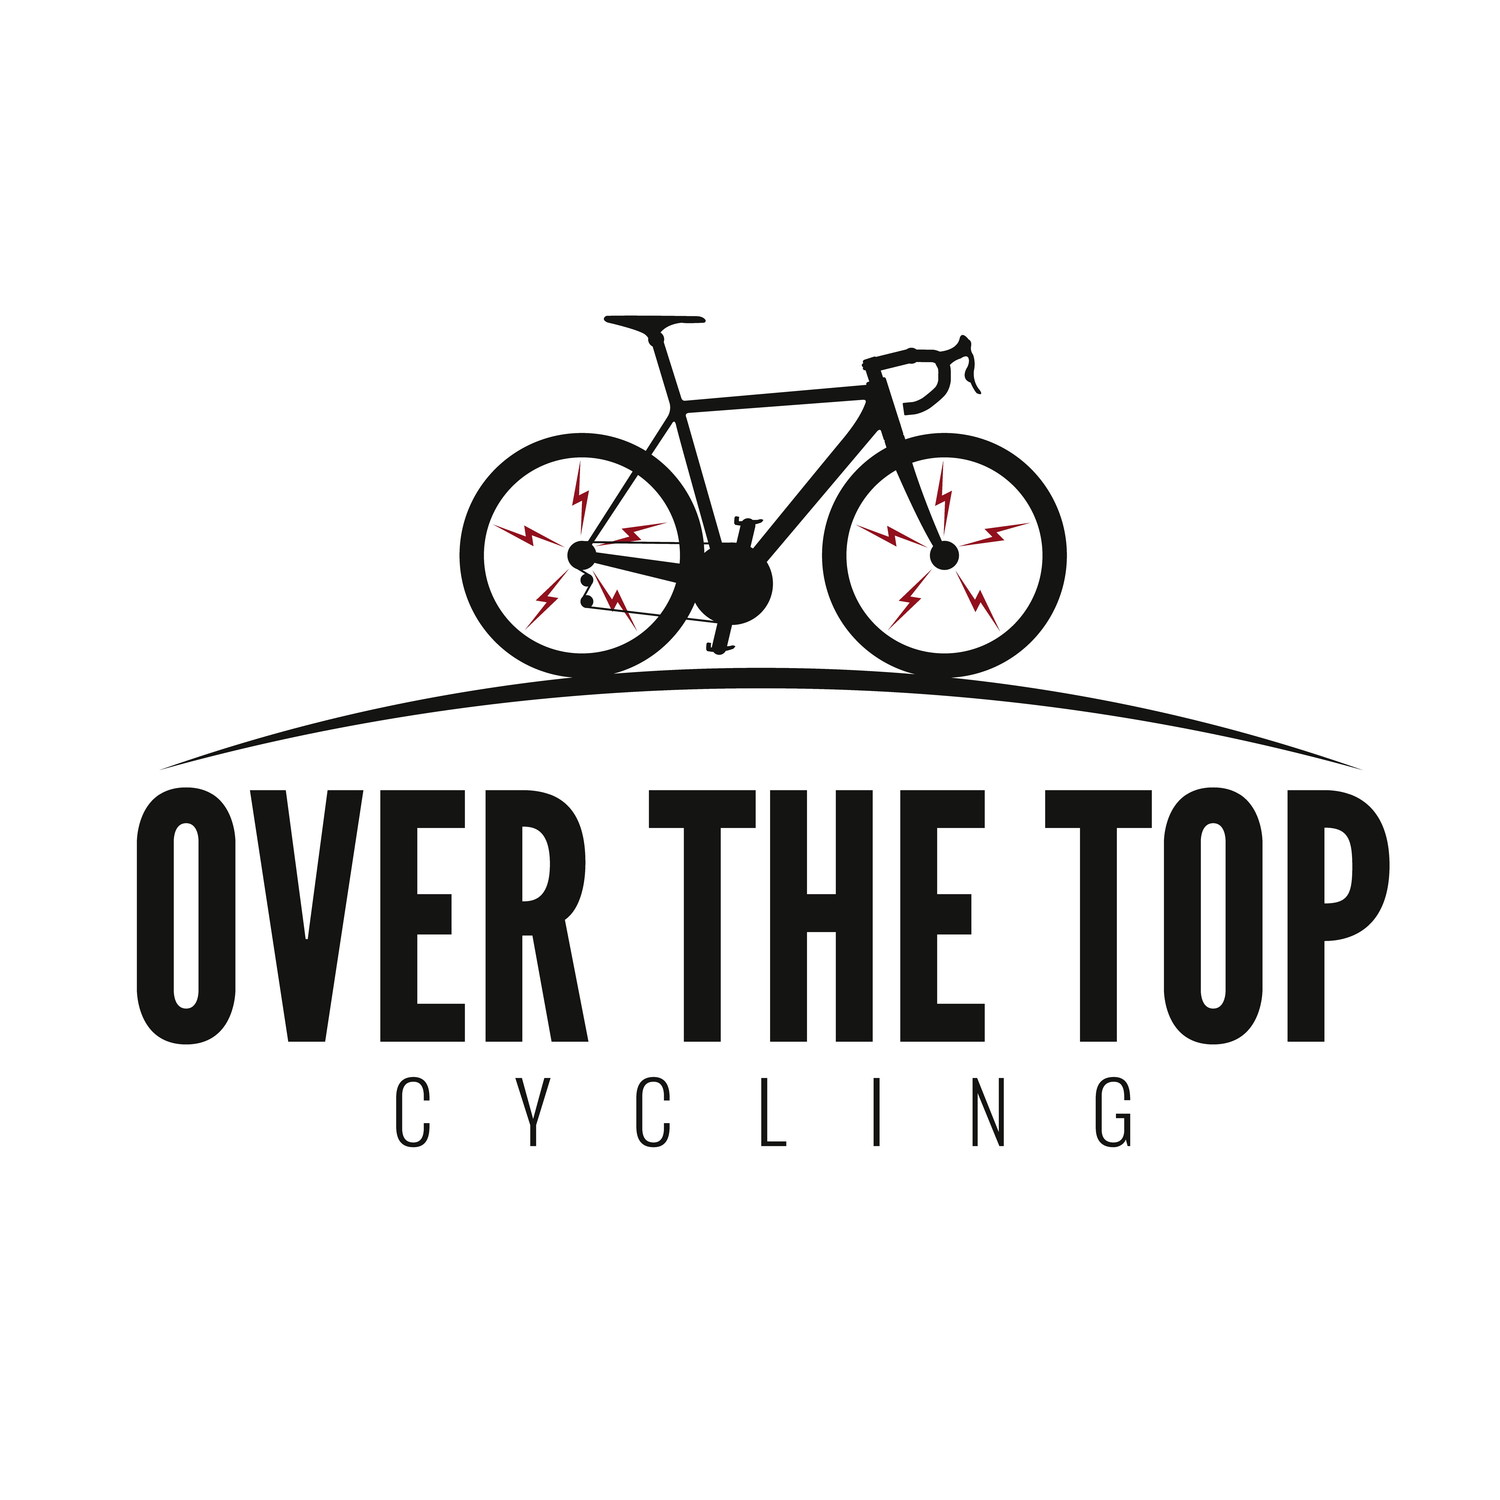 Over the Top News! - Over The Top Cycling